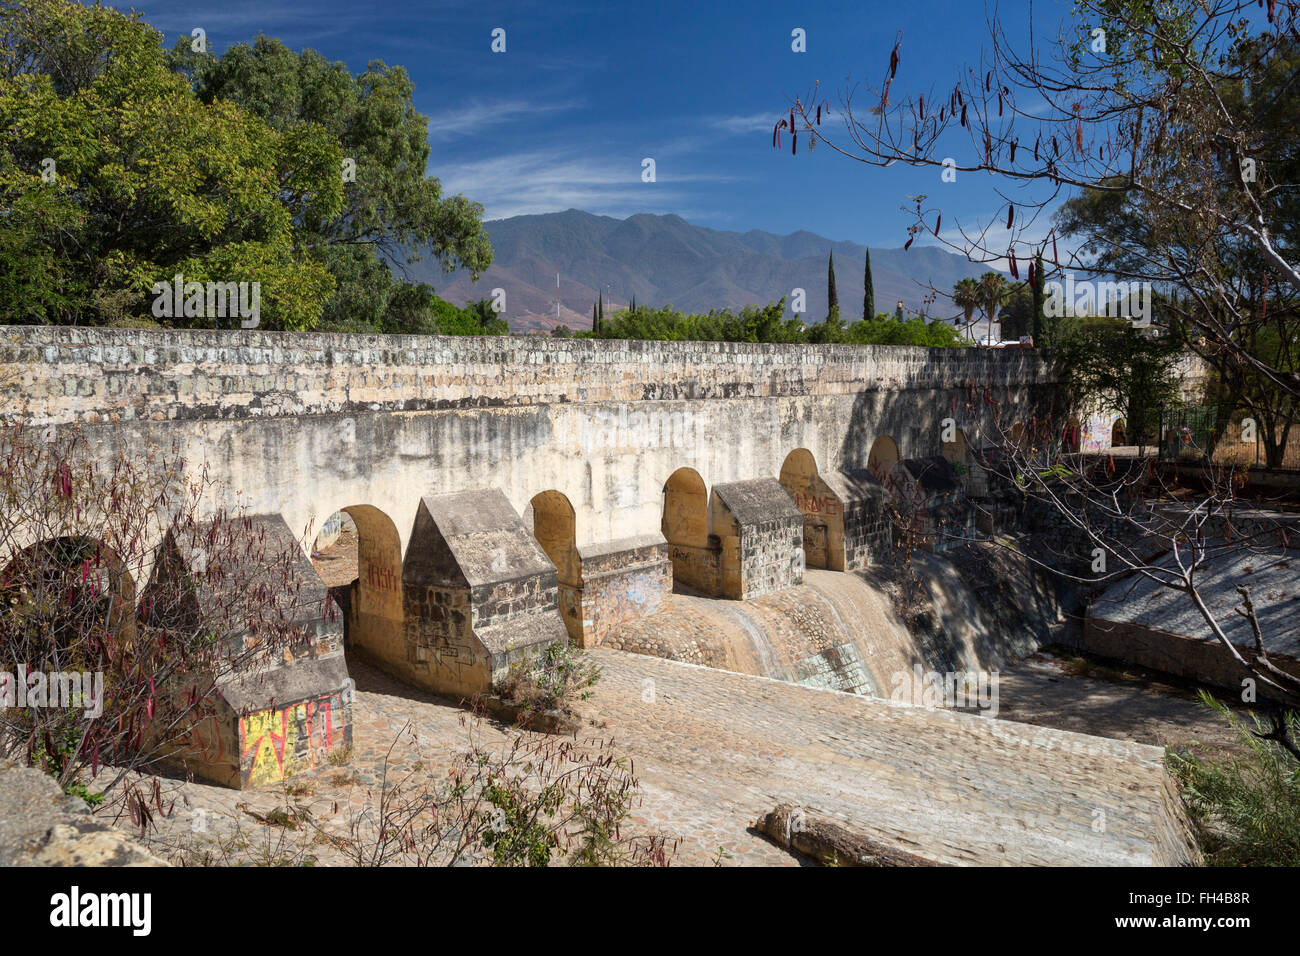 Oaxaca, Mexico - The Acueducto la Cascada (La Cascada Aqueduct) was part of a water supply system for Oaxaca. - Stock Image